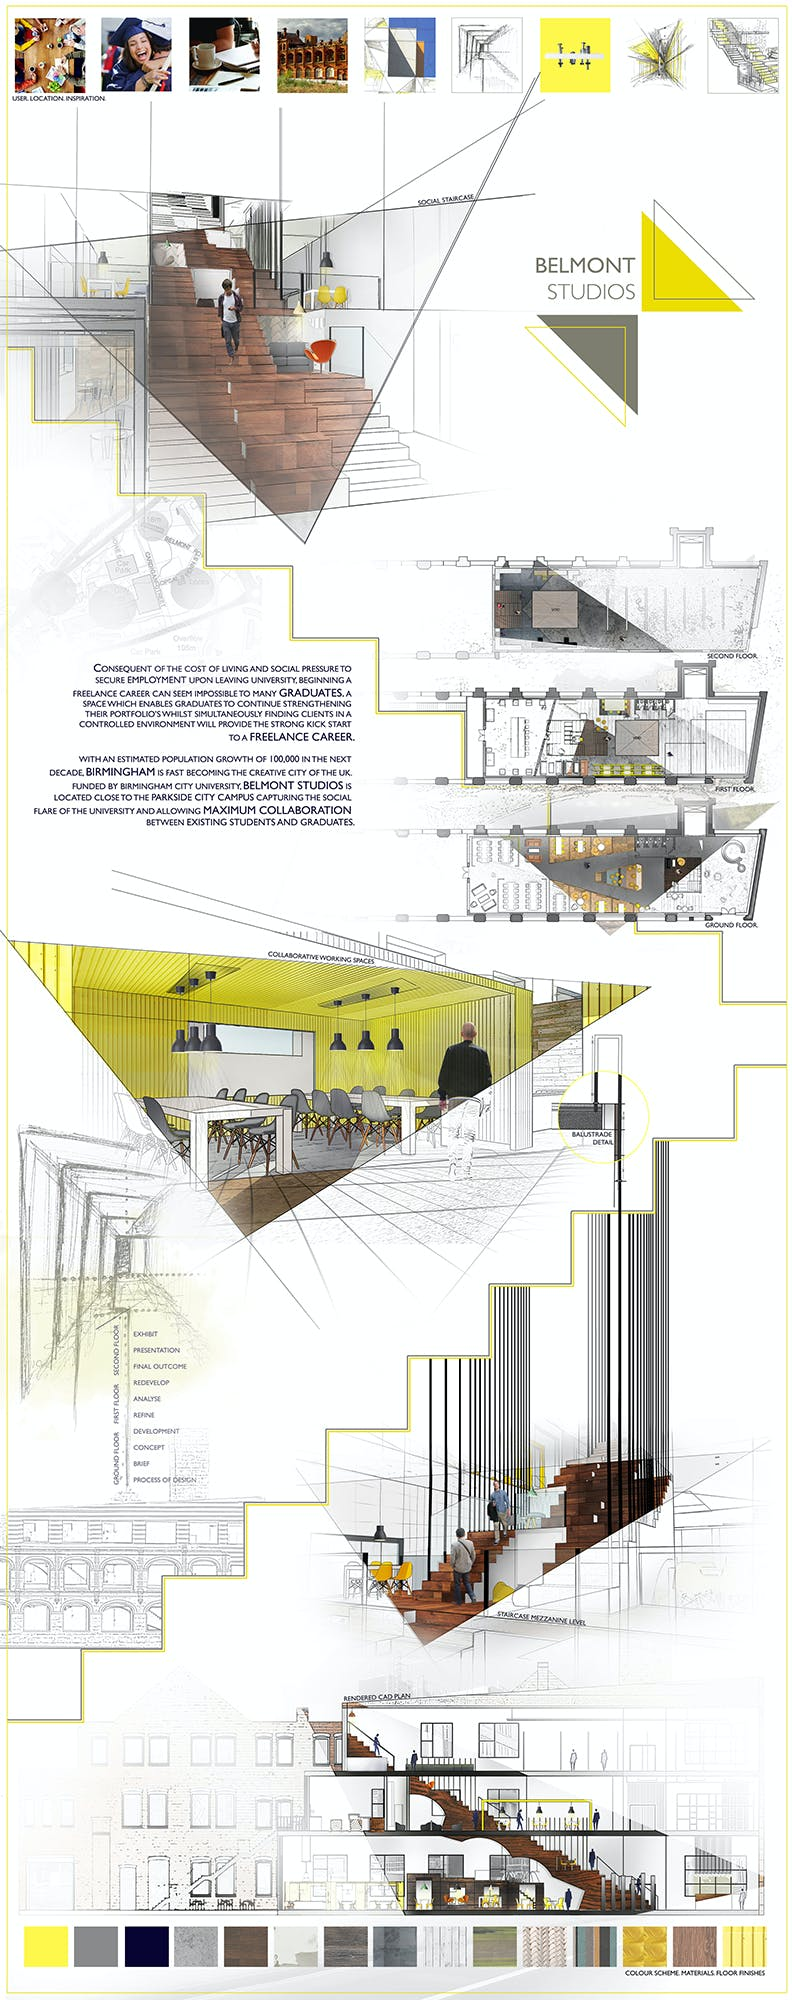 Interior Architecture and Design BA Hons 201819 Entry